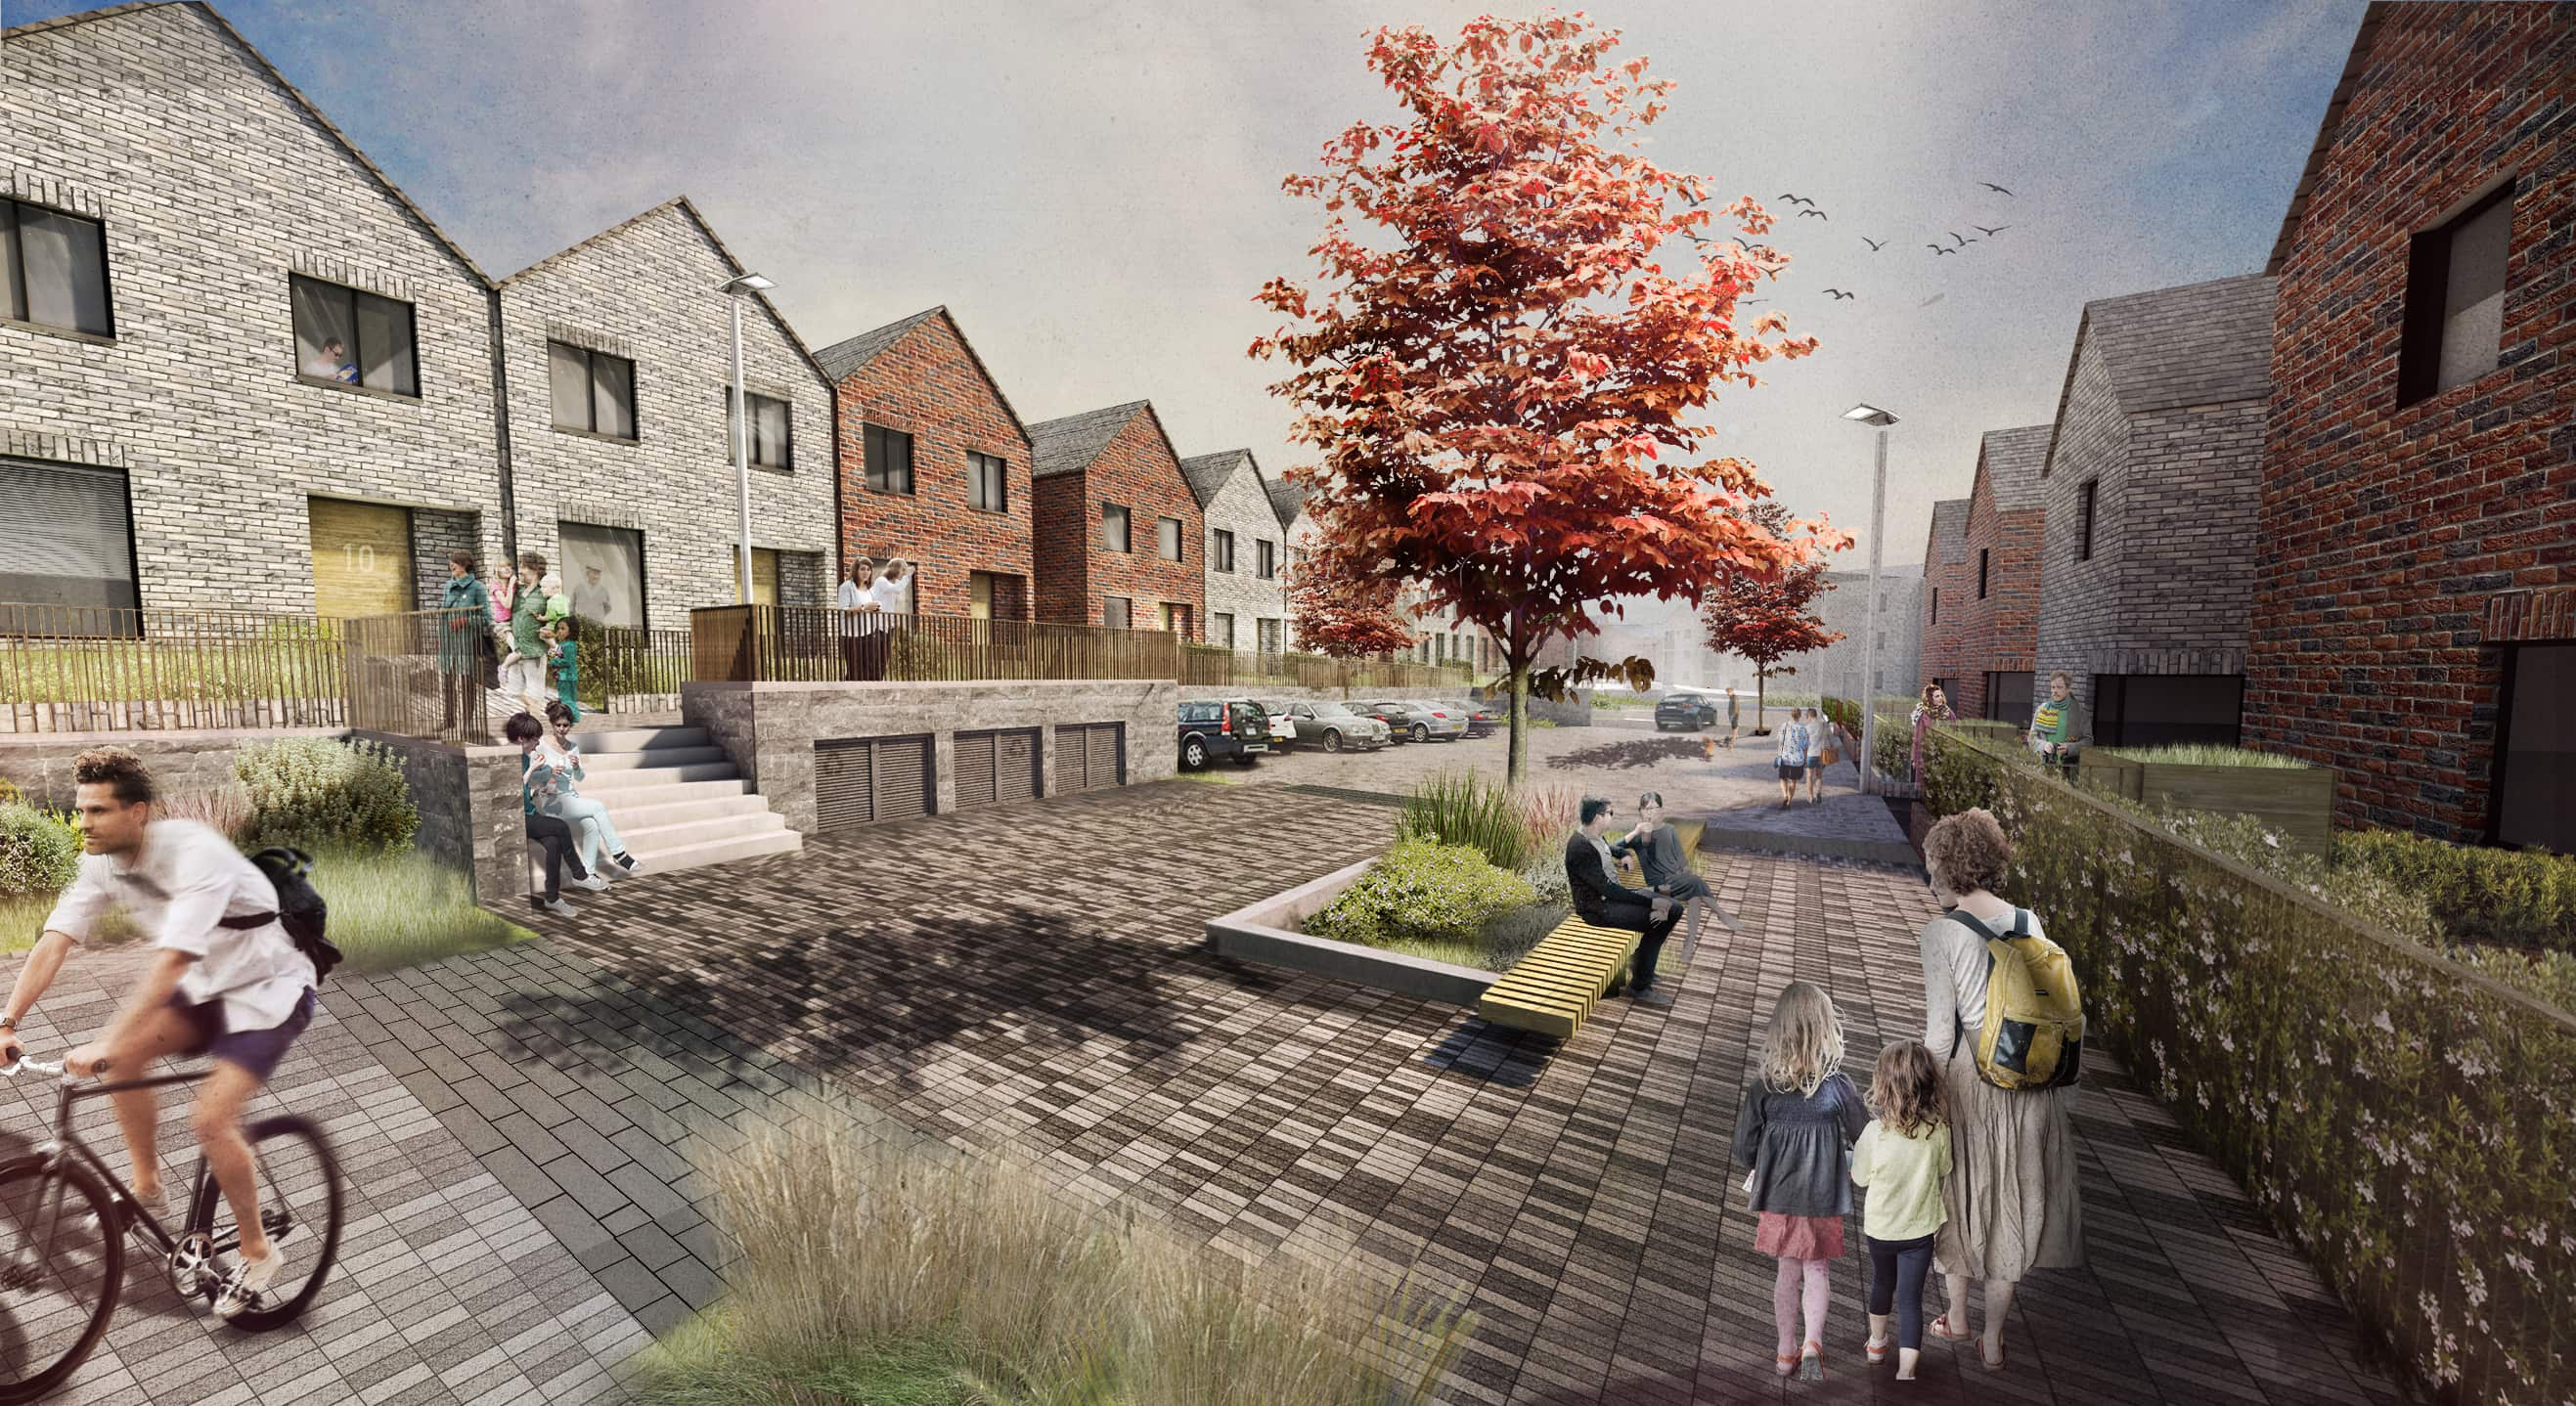 Planning granted for the Barne Barton development